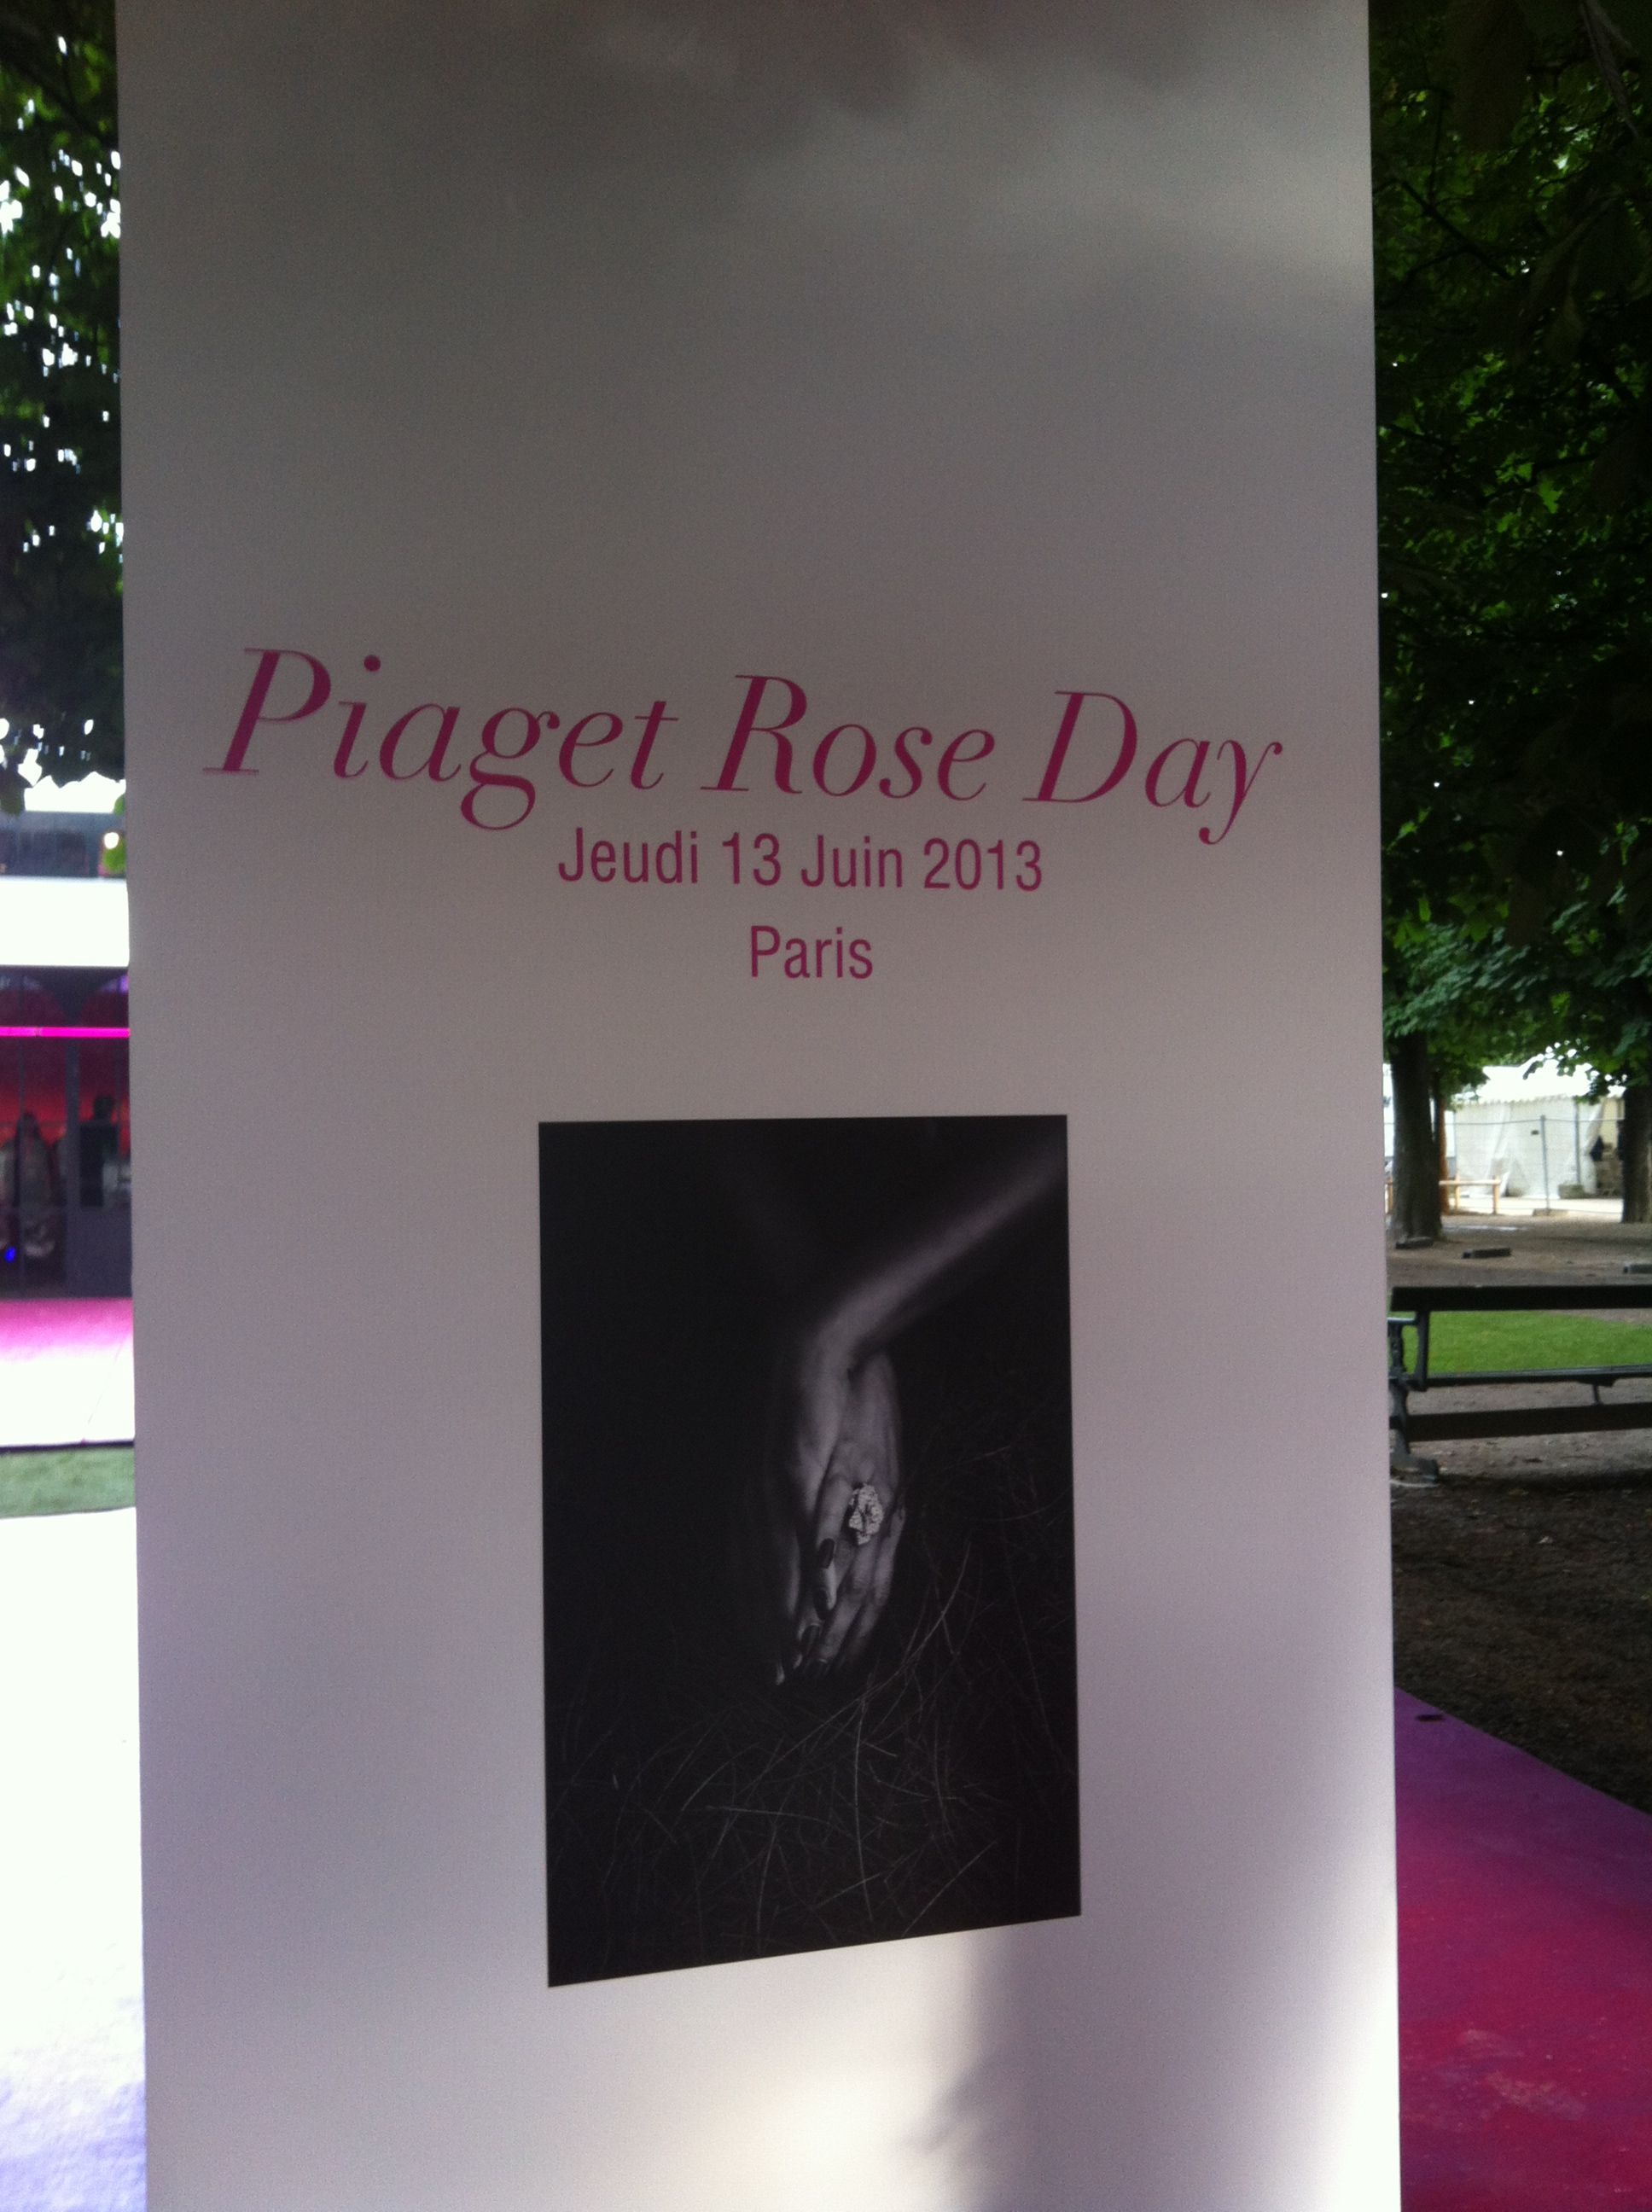 The Piaget Huewe Event Is About To Start To Celebrate Piagetroseday Graphic Designer Job Design Jobs Graphic Design